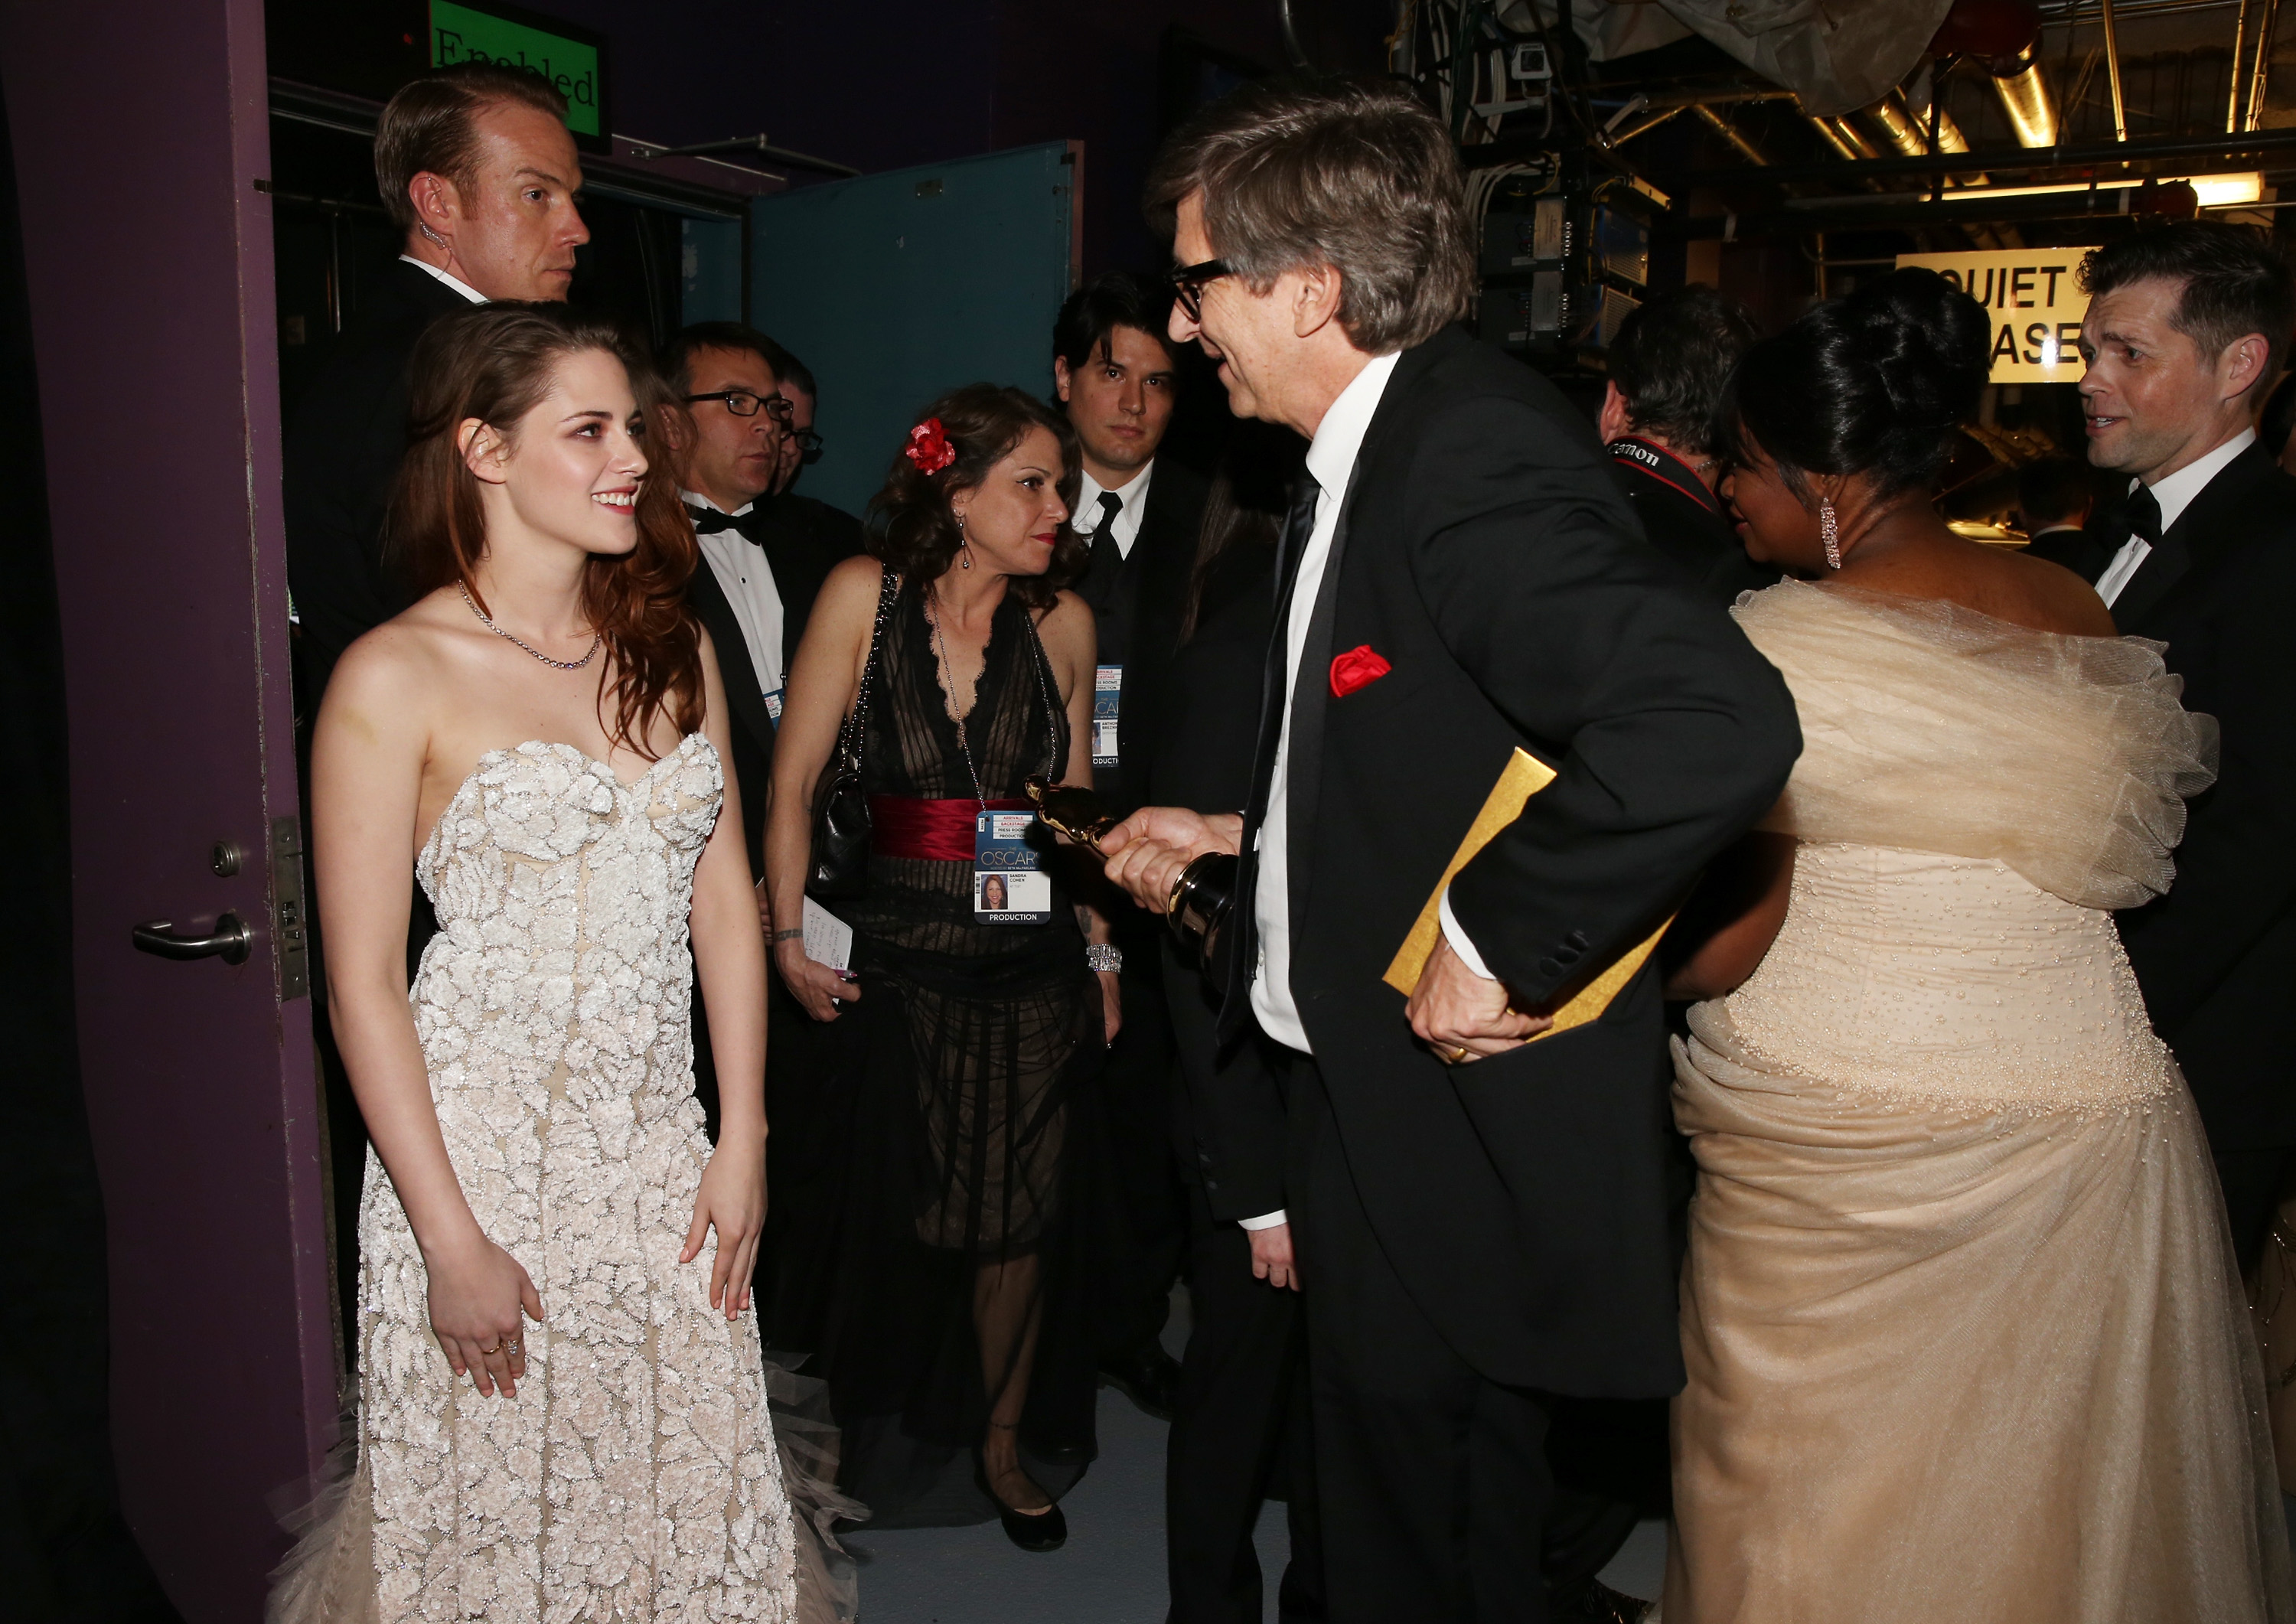 Kirsten Stewart chatted with Peter Castro backstage at the Oscars.